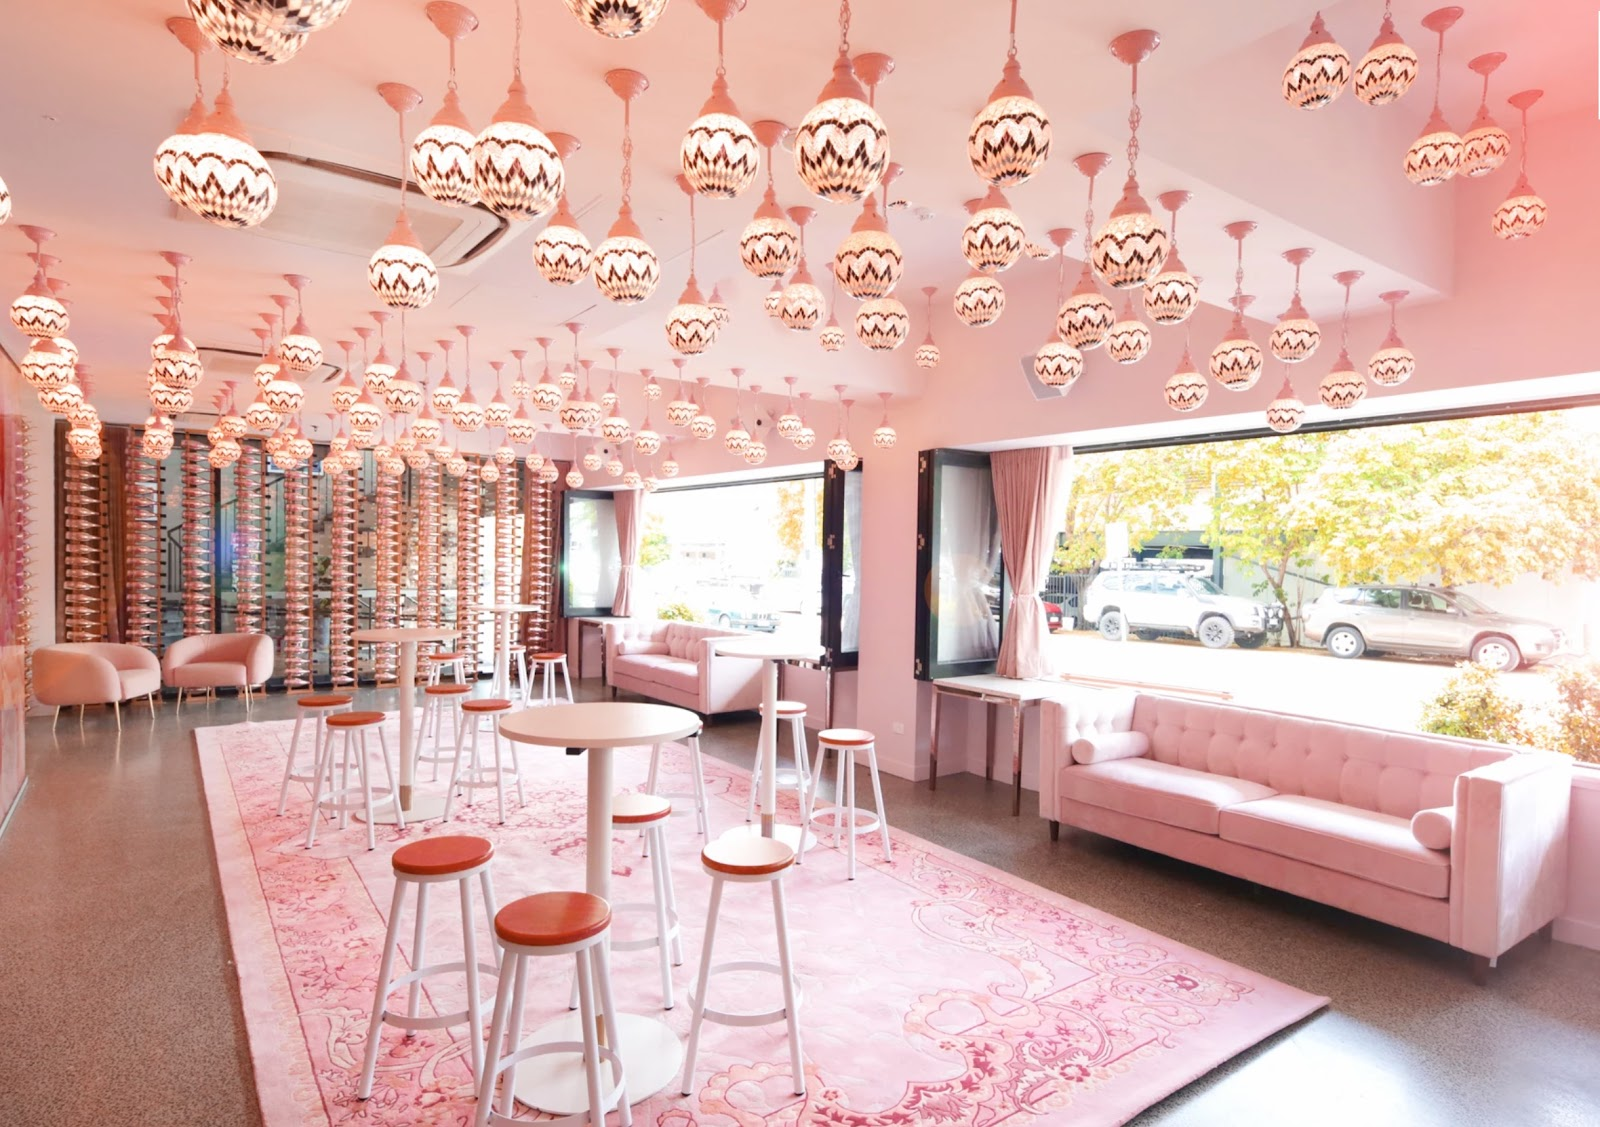 Instagrammable Pink Themed Rose Room Cafe Opens In Fortitude Valley Fortitude Valley News